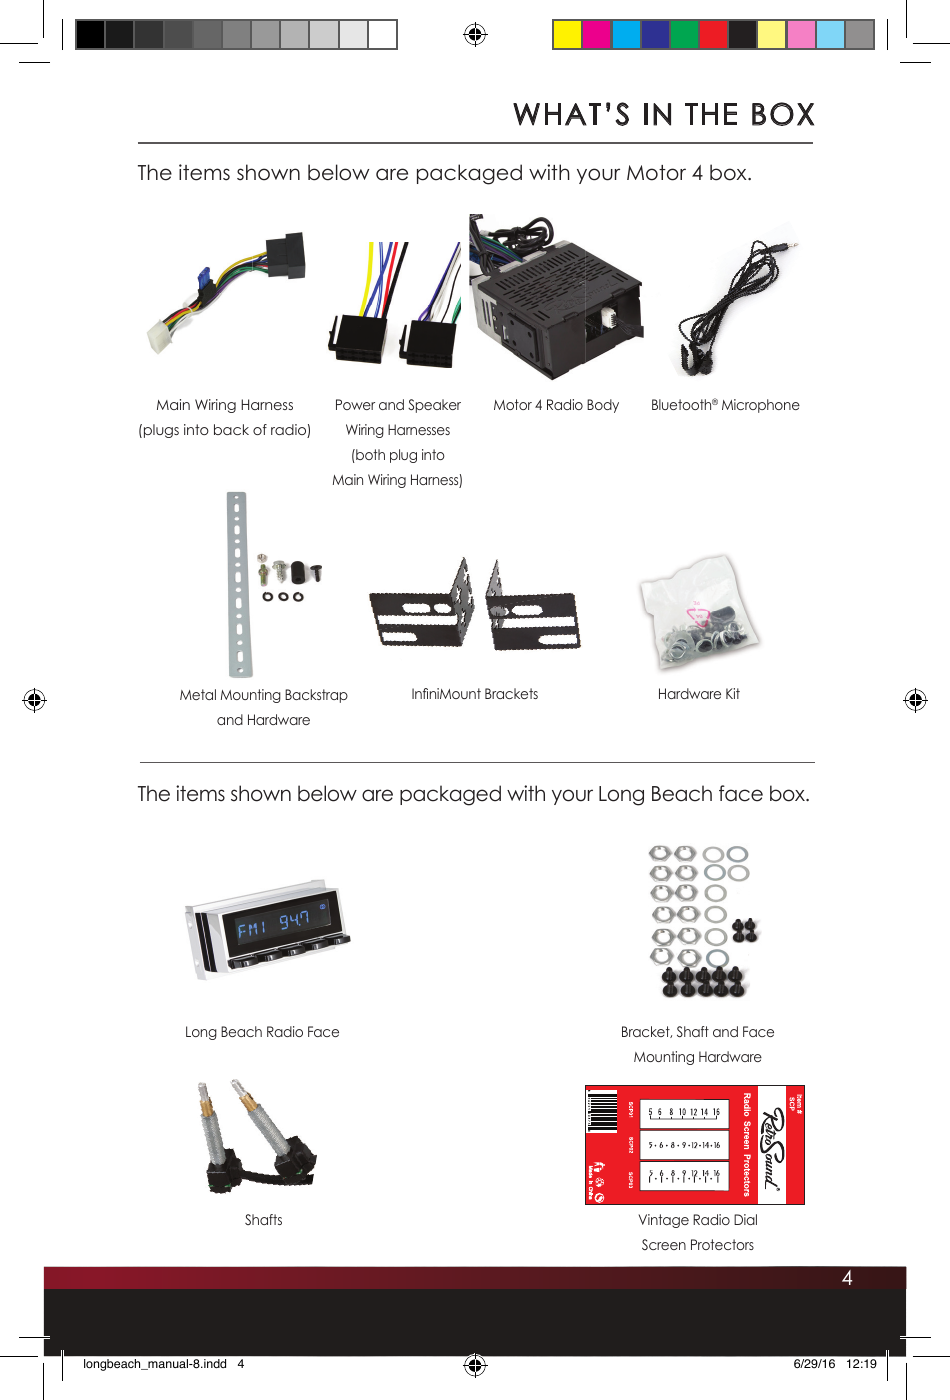 Soundmax Electronics Motor4 Car Audio System Player User Manual Speaker Wiring Guide 4whats In The Boxthe Items Shown Below Are Packaged With Your Motor 4